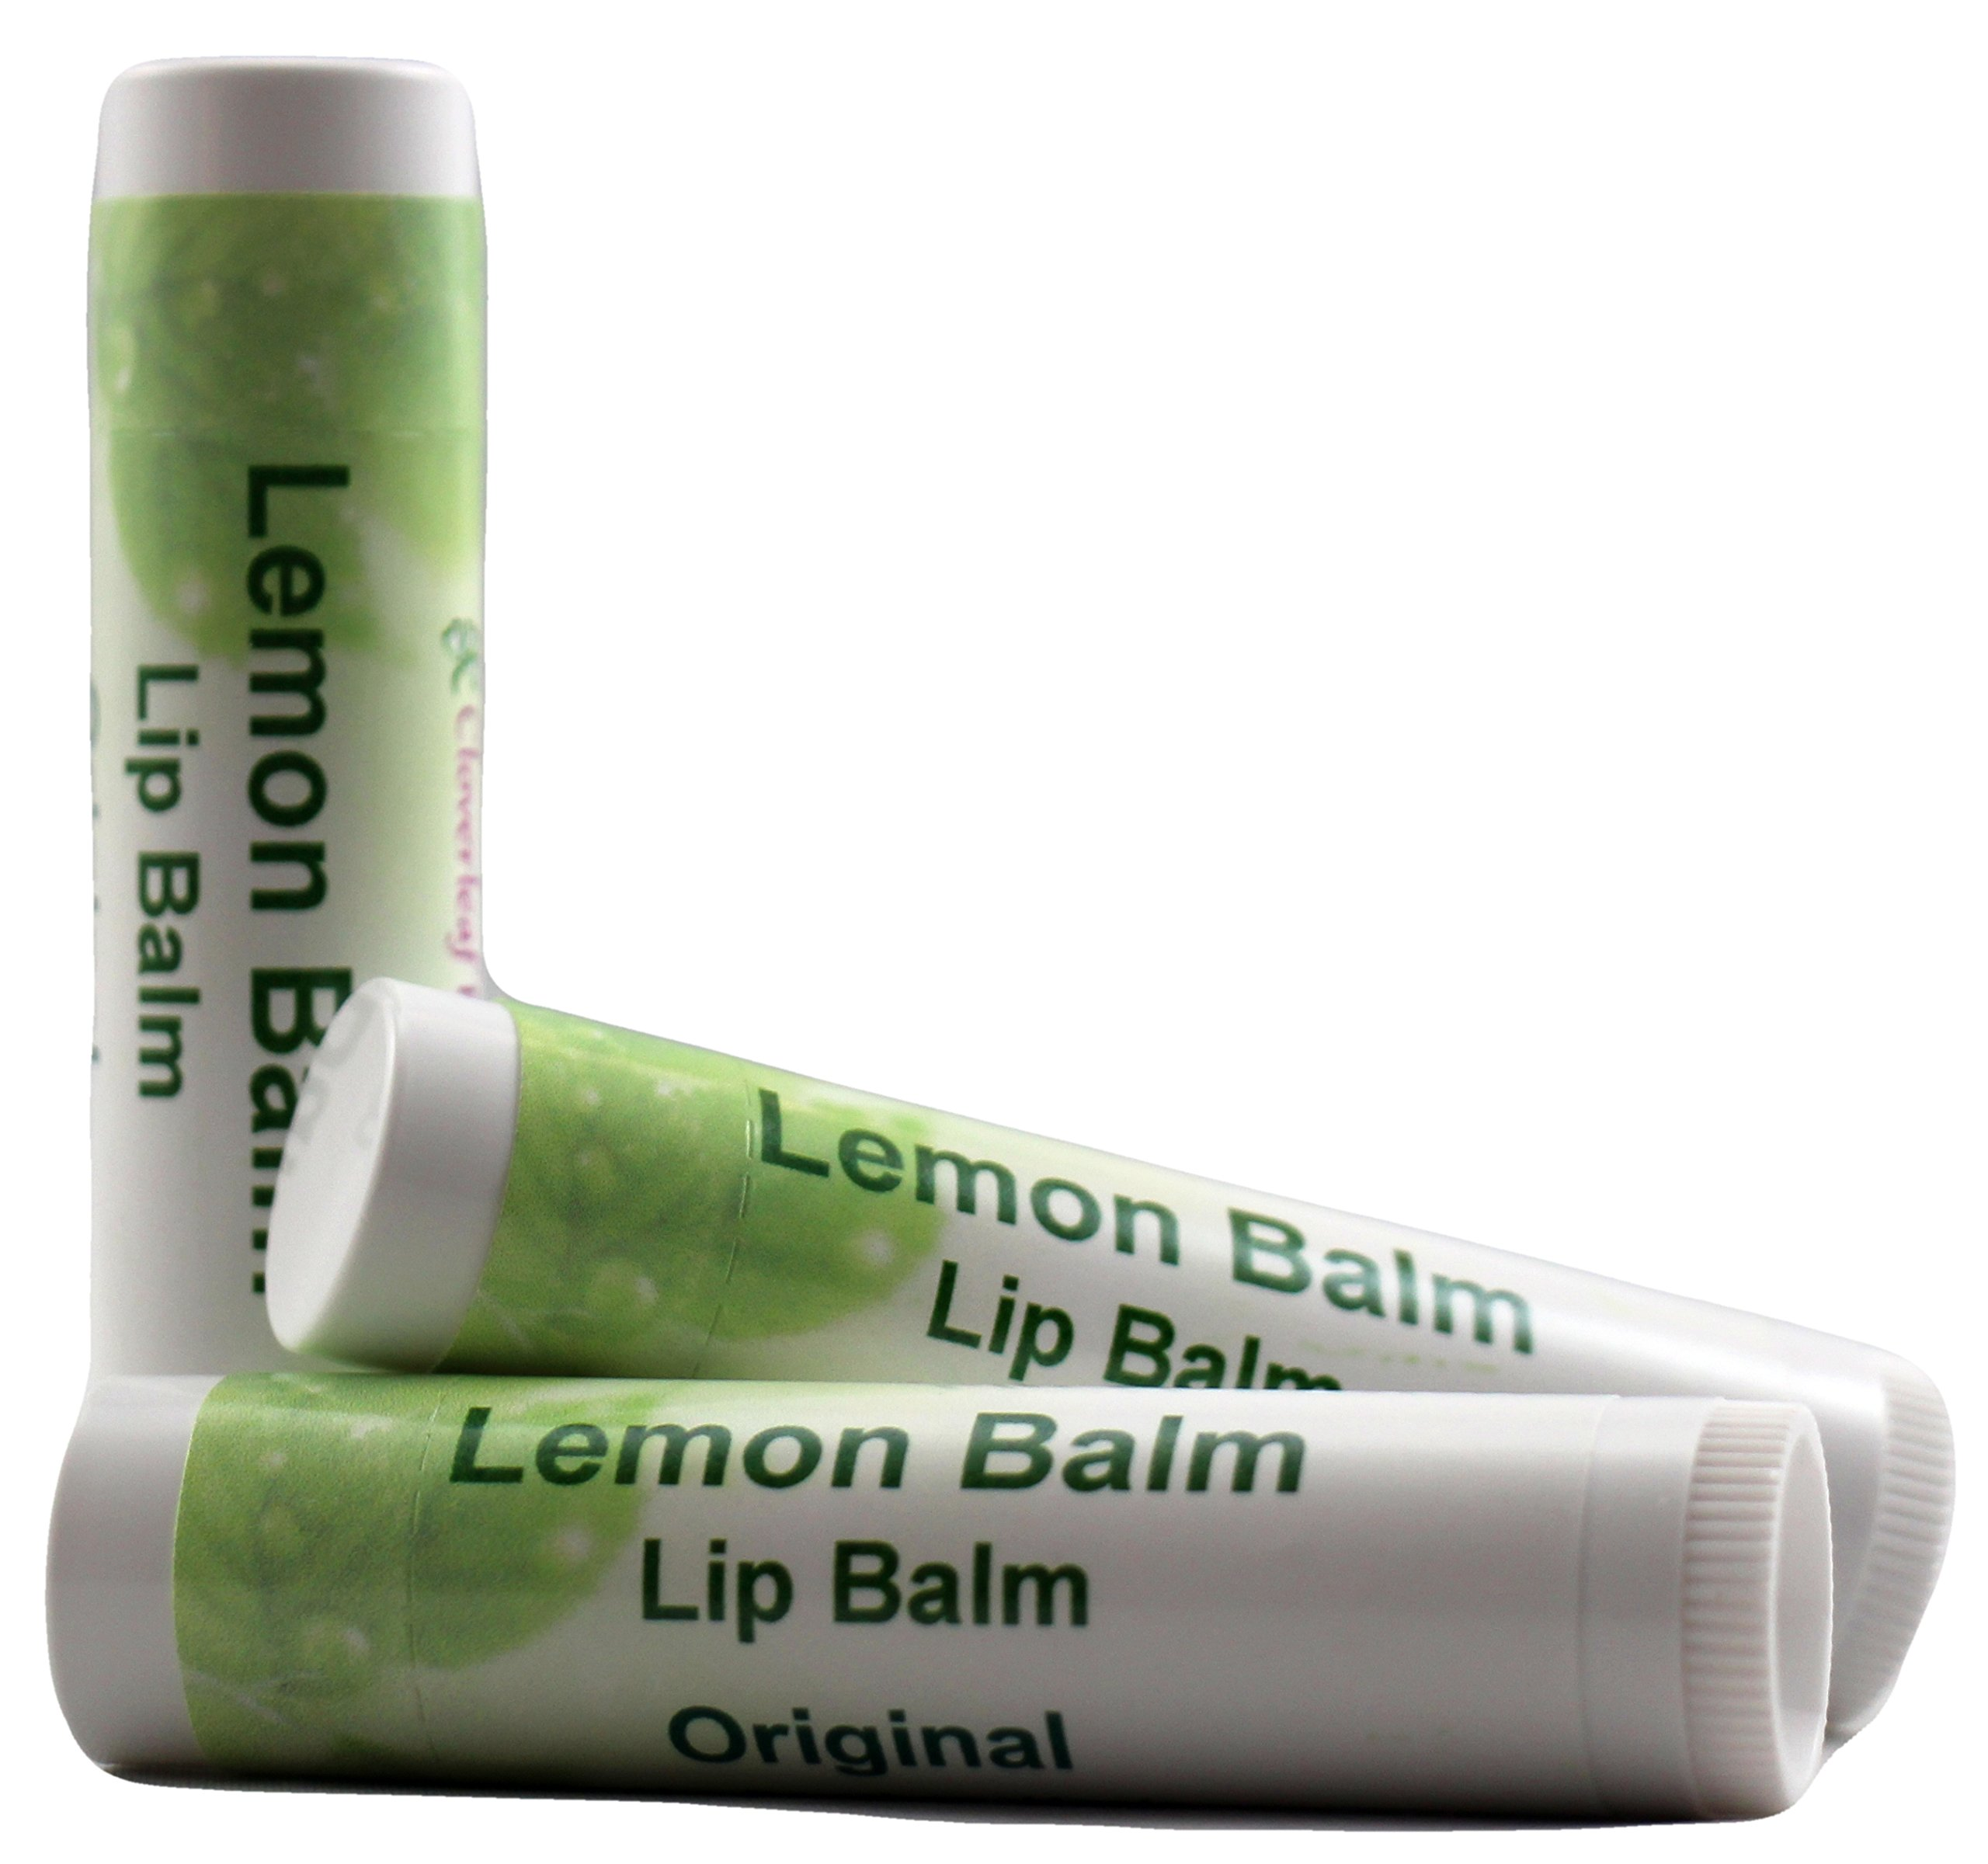 Cloverleaf Farm - Lemon Balm Lip Balm - 3 pack